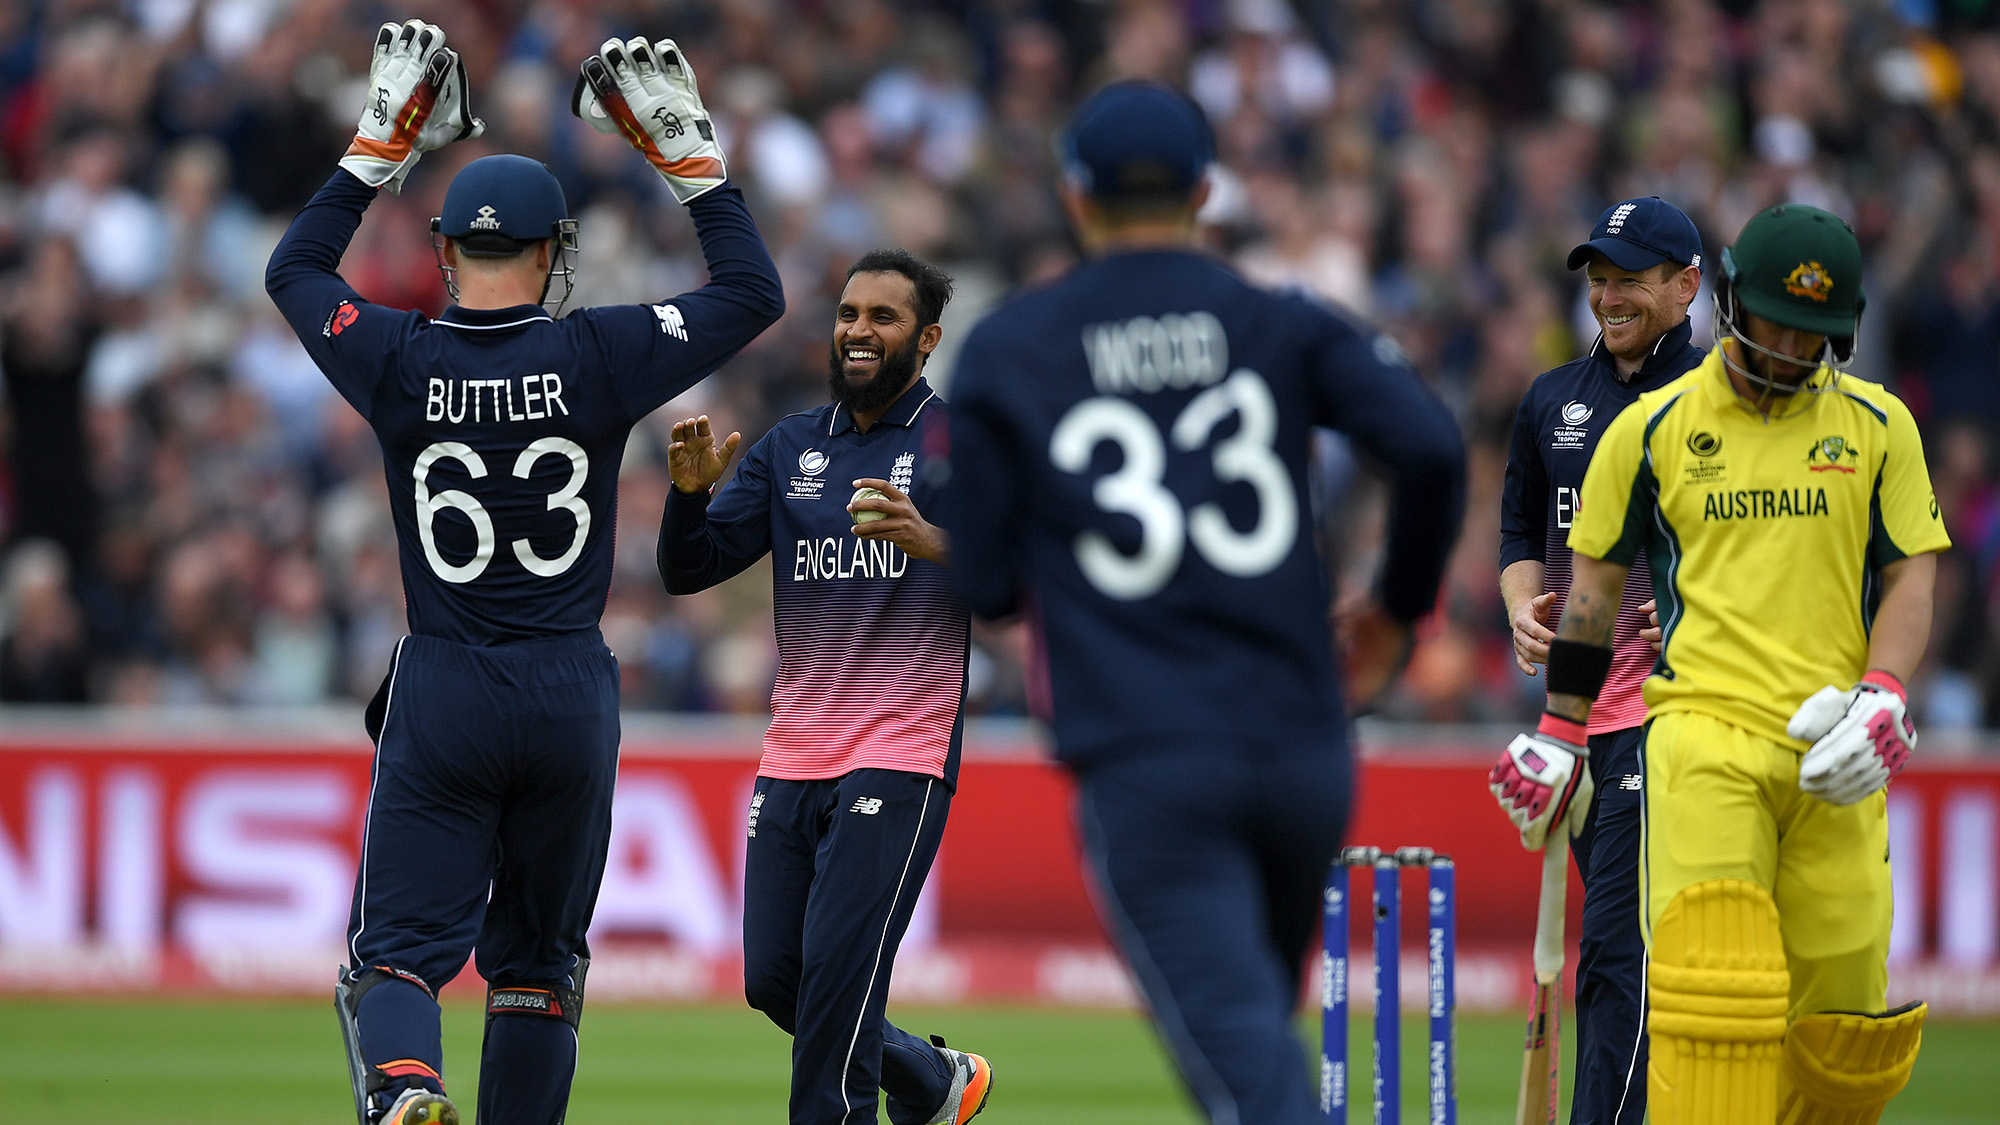 England beat Australia by 40 runs in rain-hit match